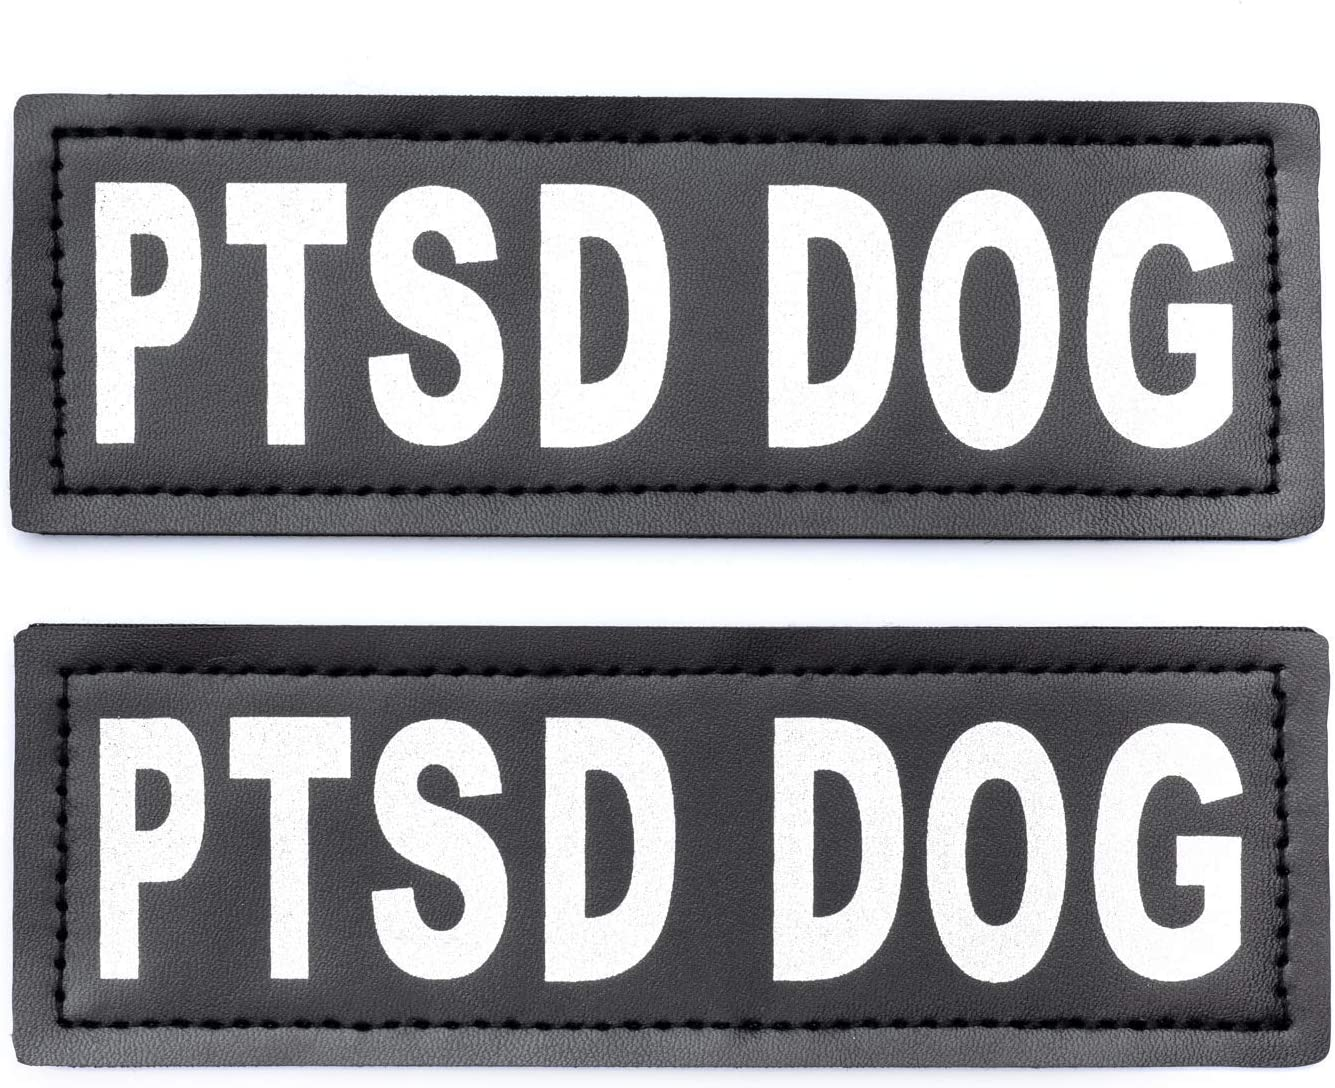 Amazon Com Industrial Puppy Ptsd Dog Patch For Service Dog Vest Ptsd Service Dog Patches For Service Dog Emotional Support In Training Service Dog In Training And Therapy Dog Harnesses